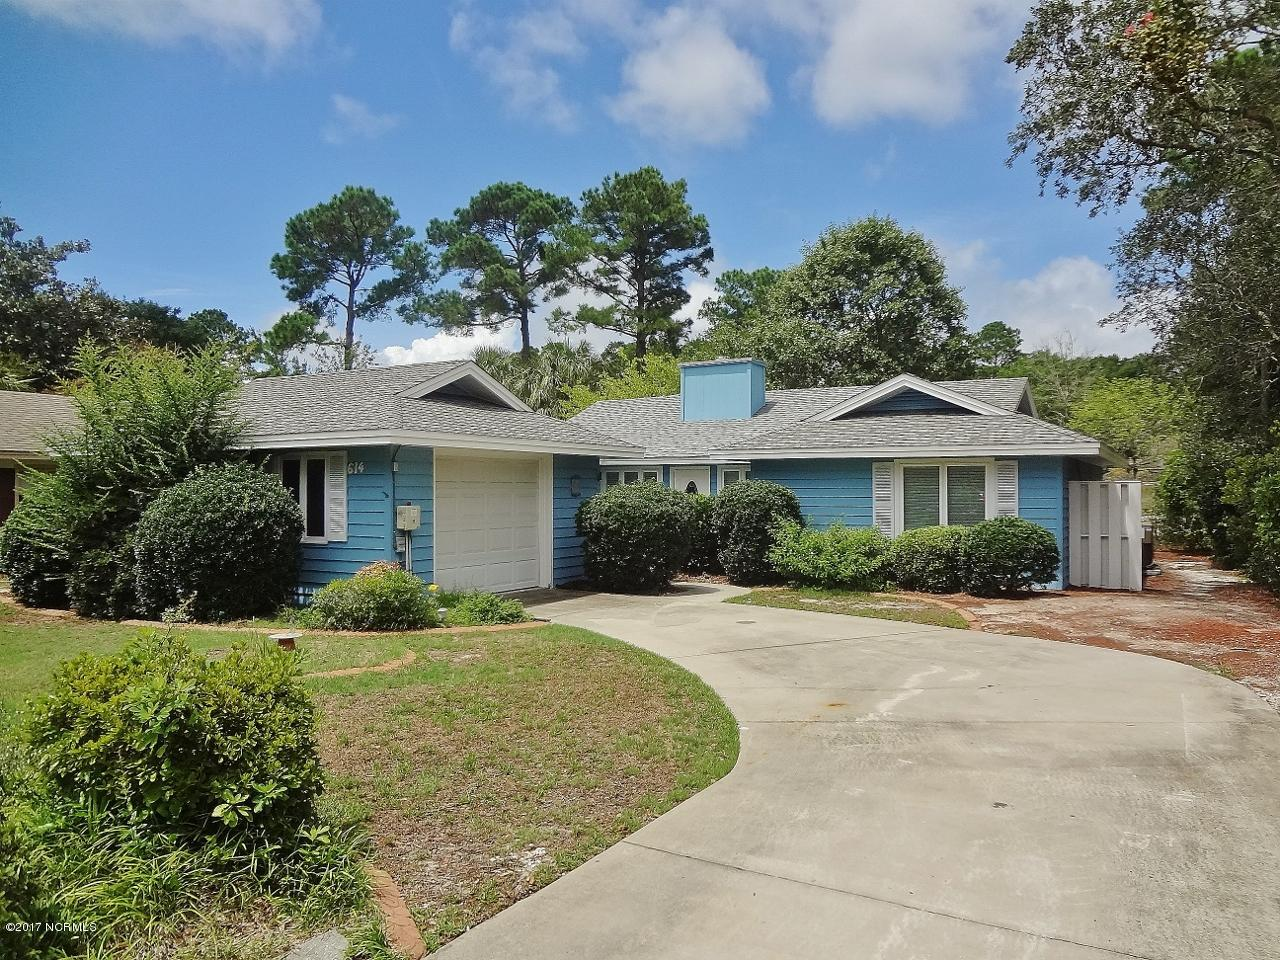 614 Jasmine Lane Sunset Beach, NC 28468